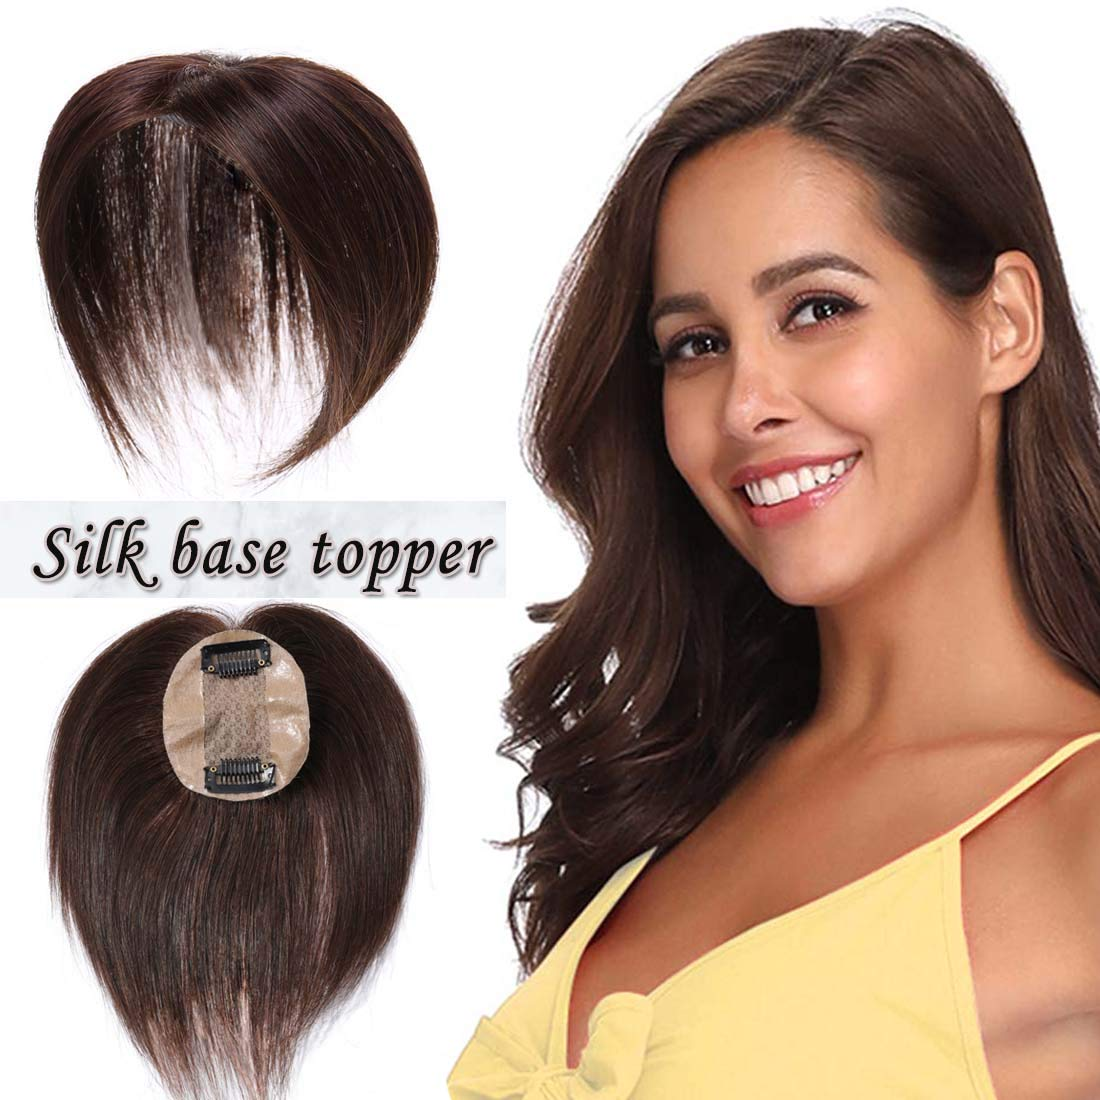 S-noilite Silk Base Real Human Hair Topper for Women Top Hairpiece Clips in Crown Hand Made Toupee Replacement Extentions for Hair Loss Thinning Hair Cover Gray Hair (12Inch #04 Medium Brown Color)